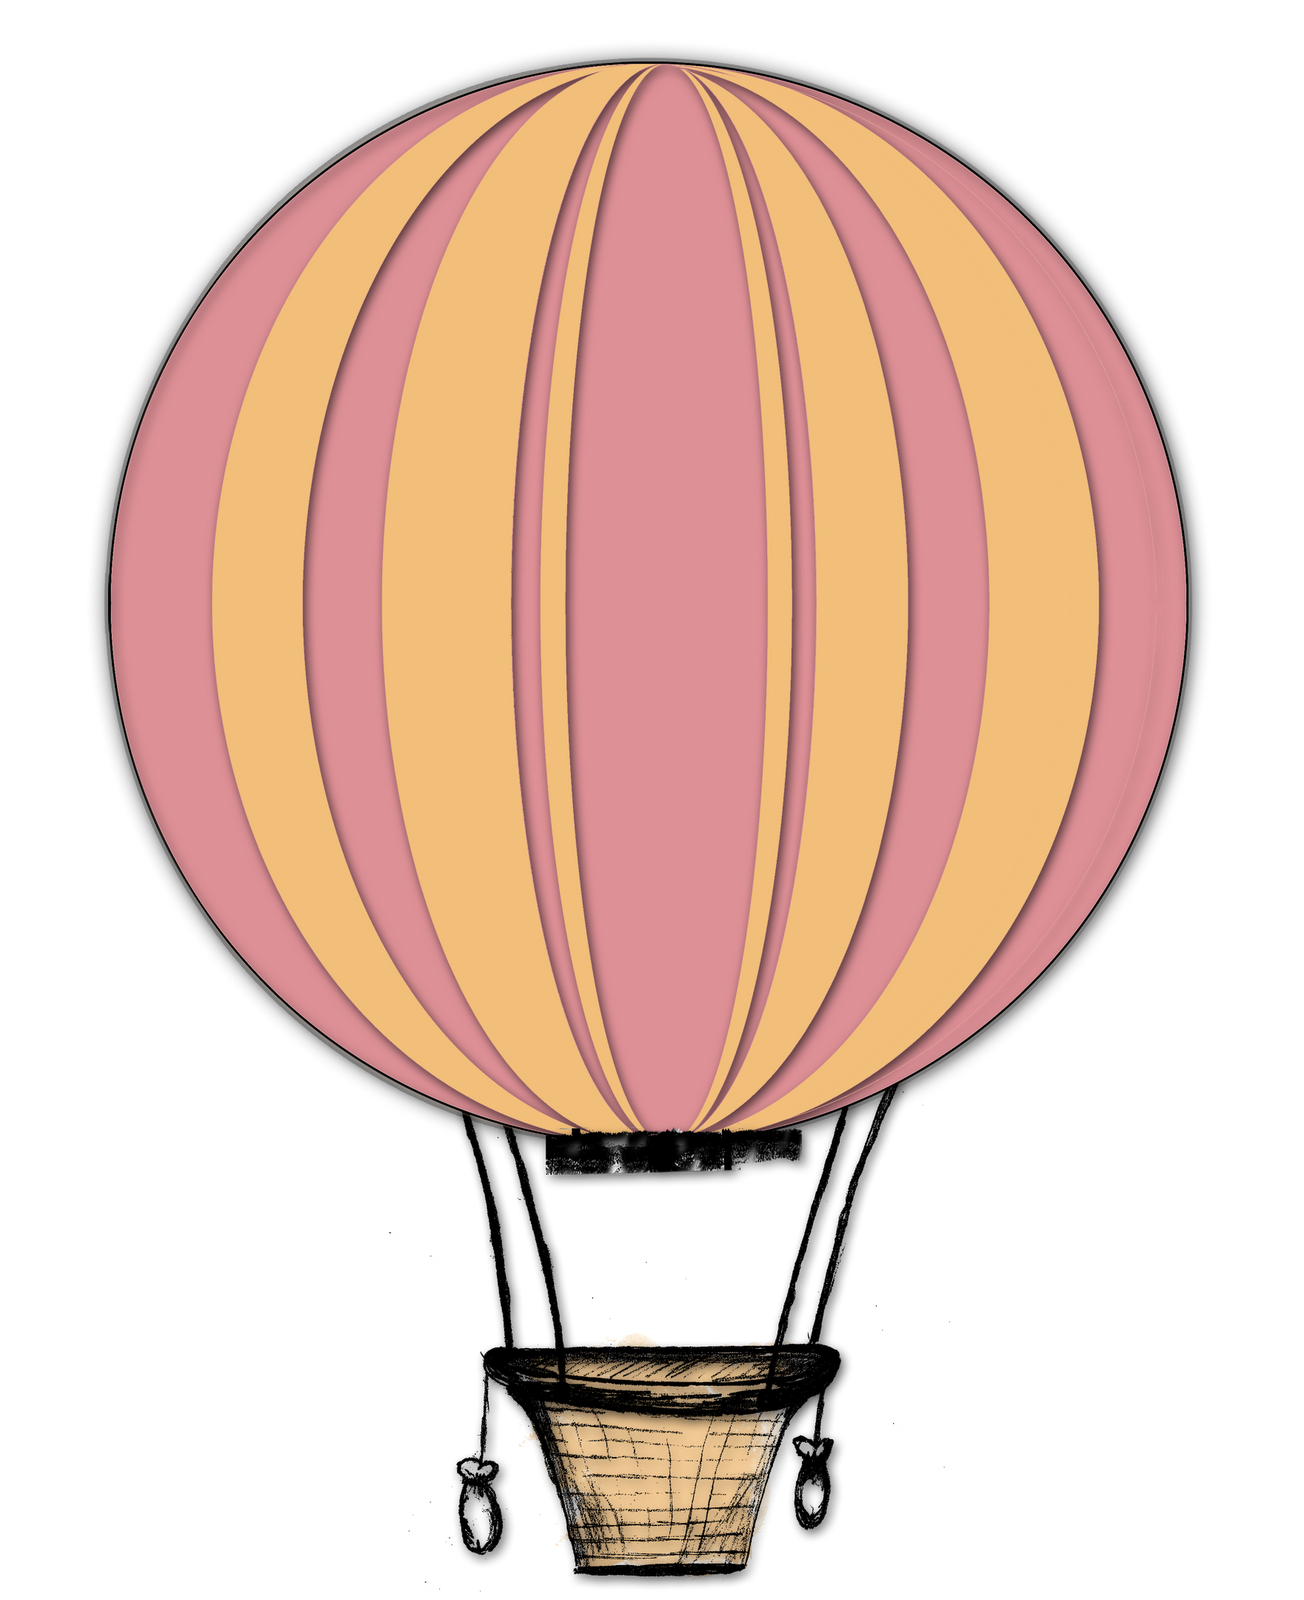 Cute Hot Air Balloon